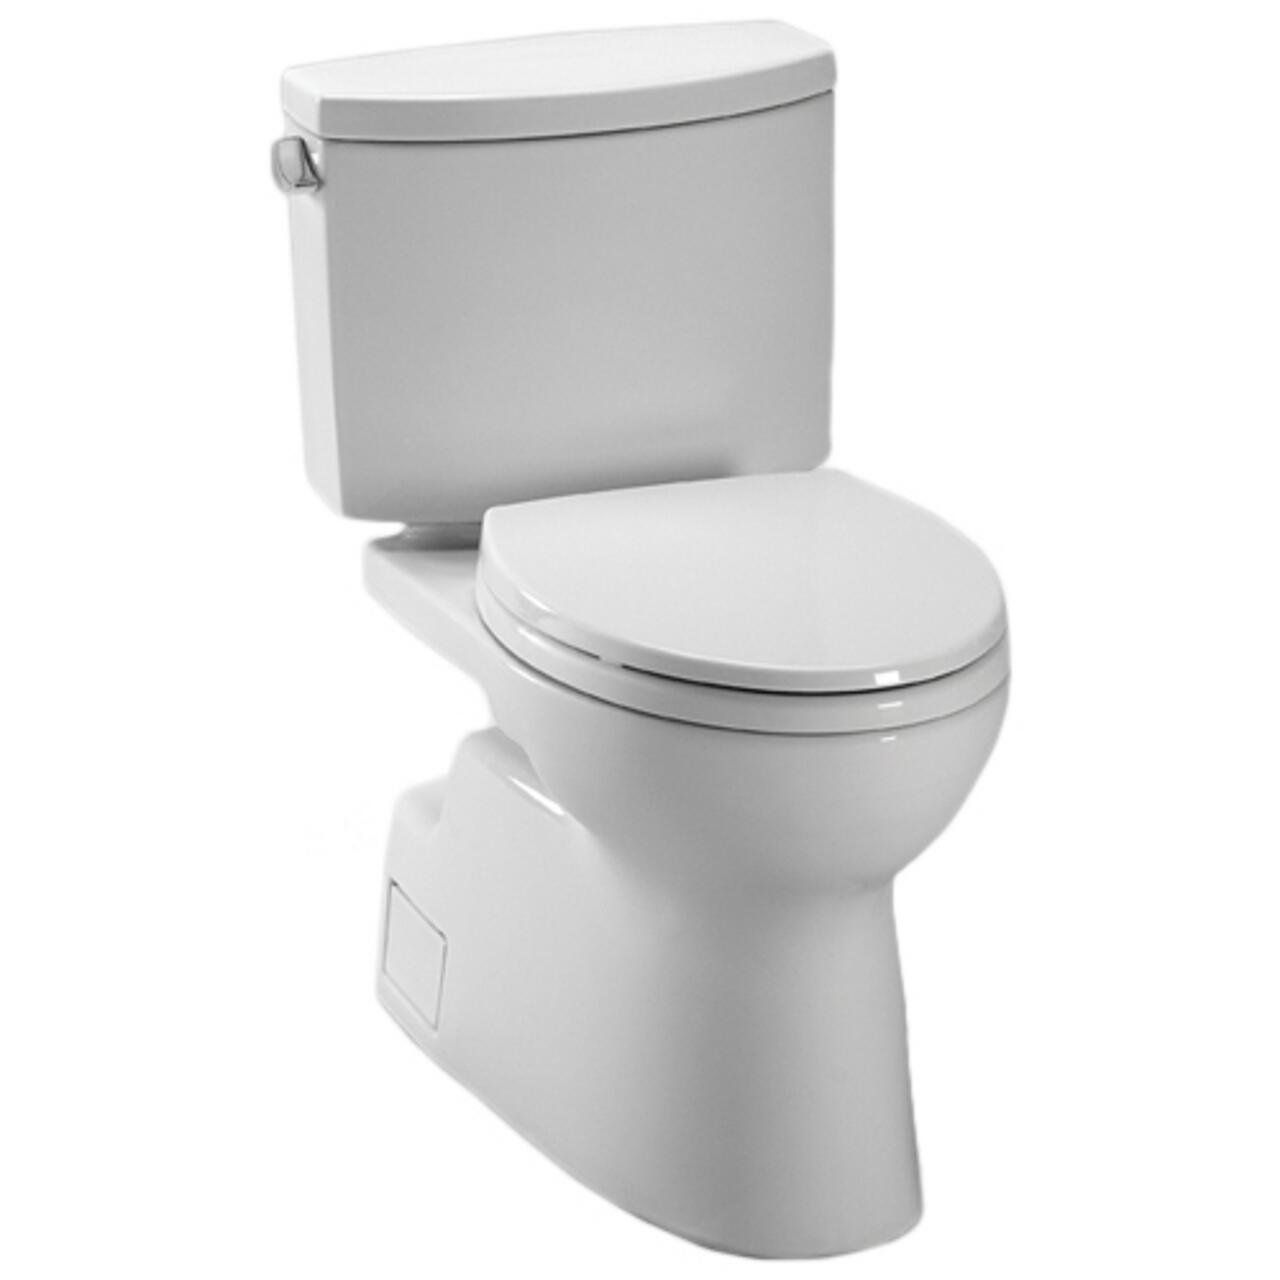 The Vespin II is a high-efficiency toilet that features Double ...